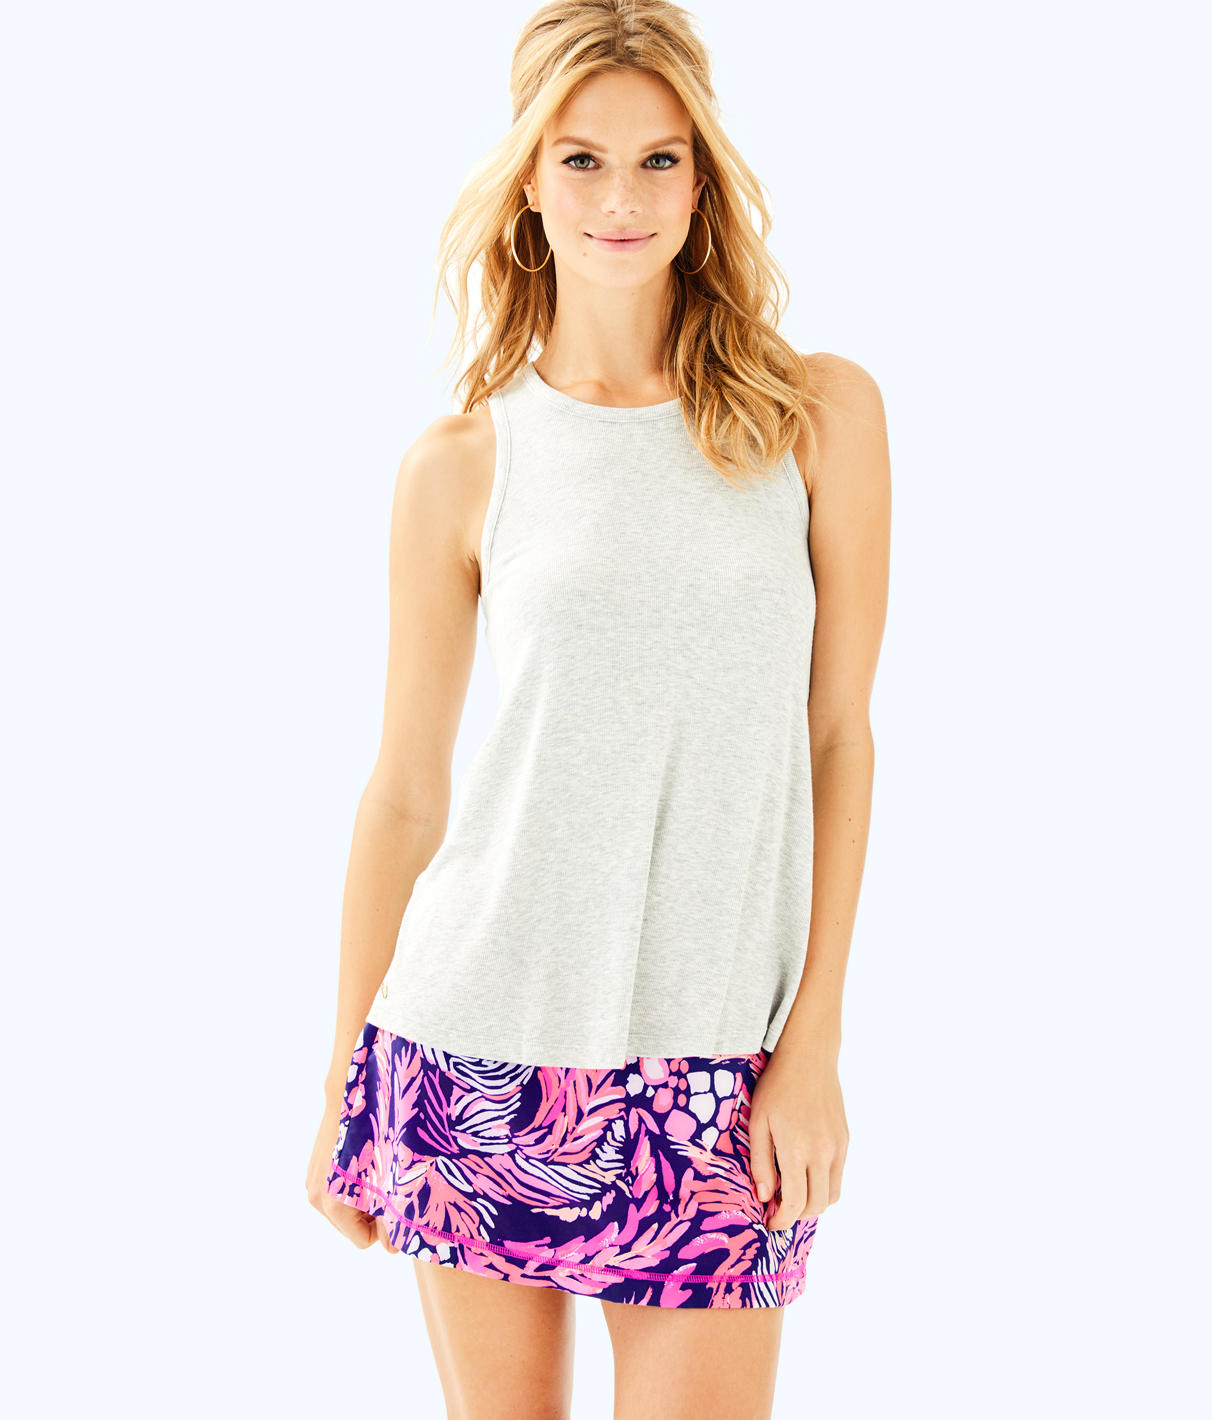 Lilly Pulitzer Lilly Pulitzer Womens Cain Tank